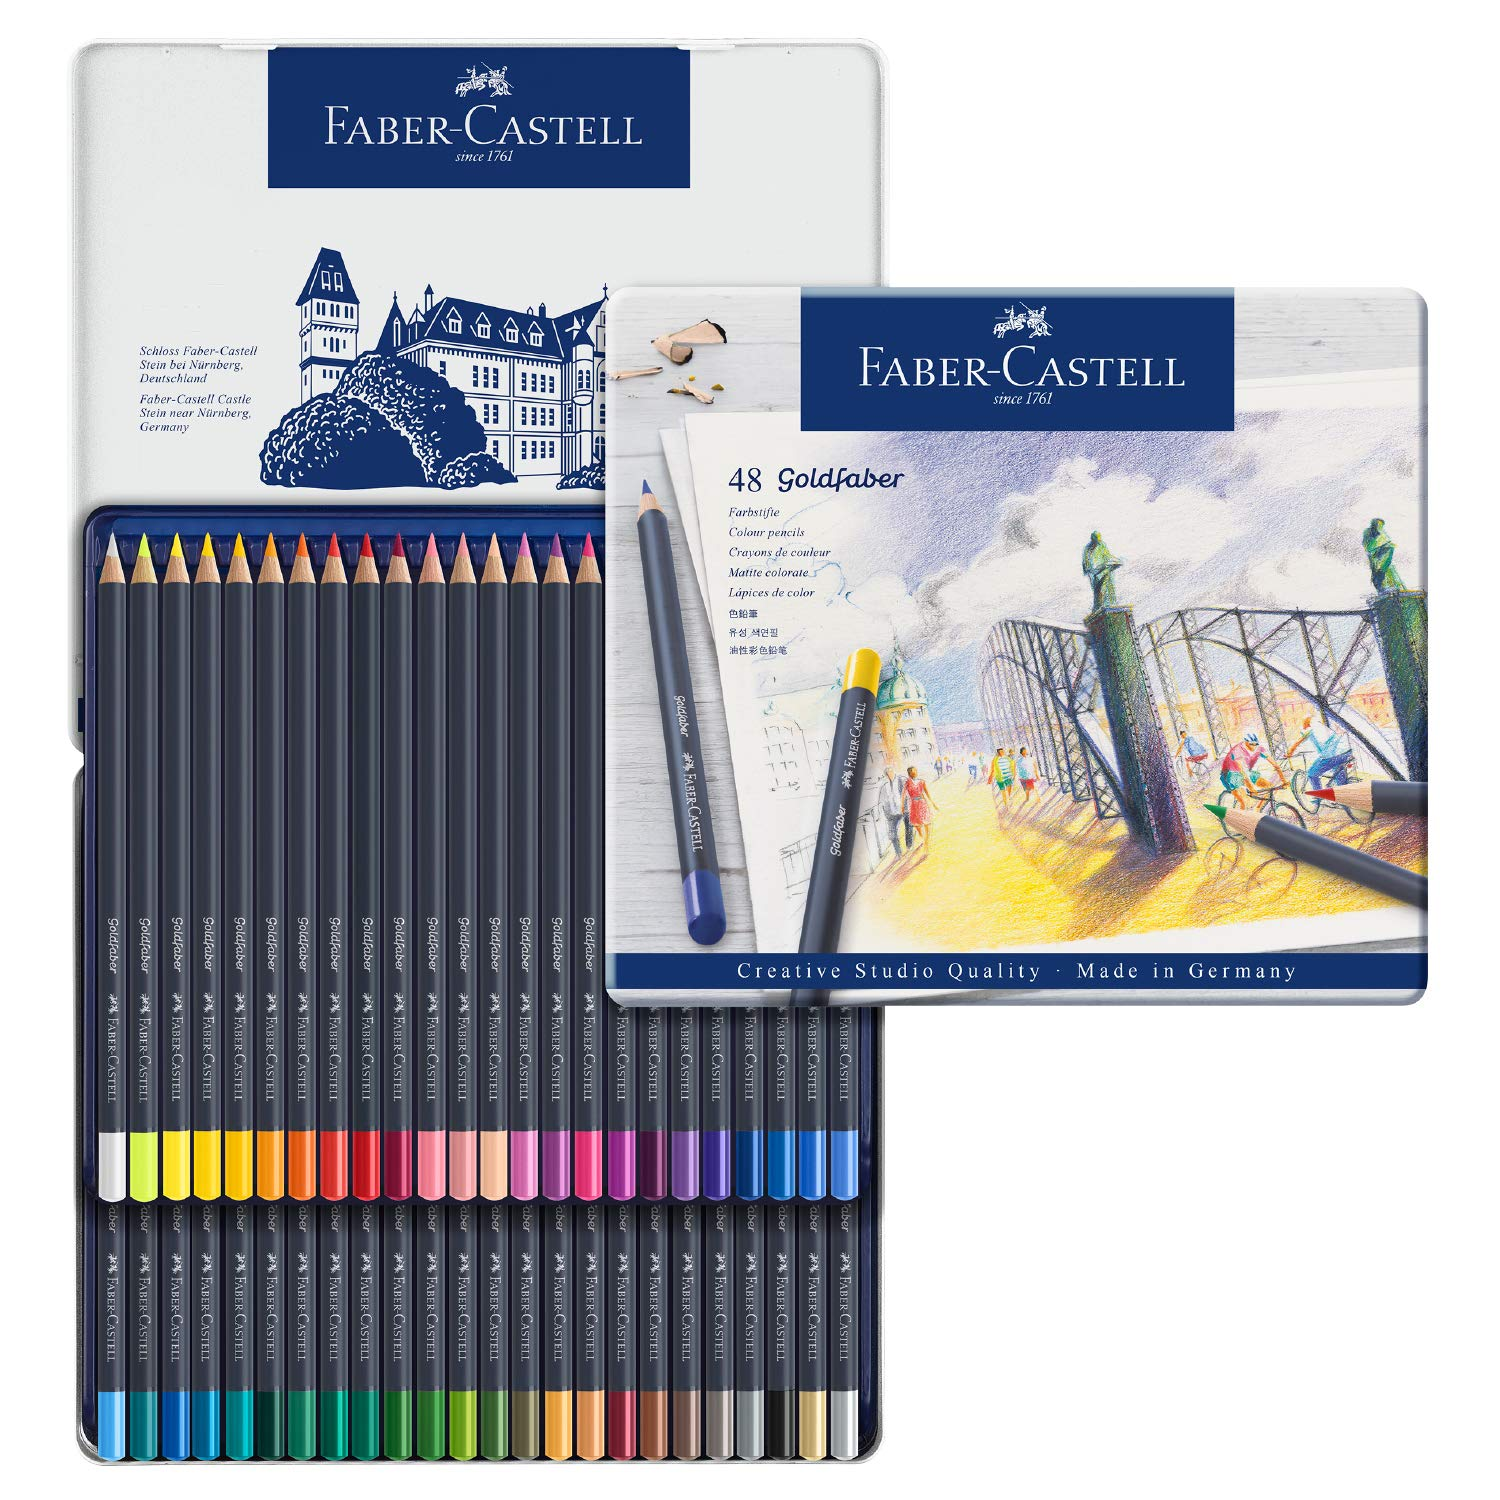 Faber-Castell Creative Studio Goldfaber Watercolor Pencils (48 Count) by Faber-Castell (Image #1)